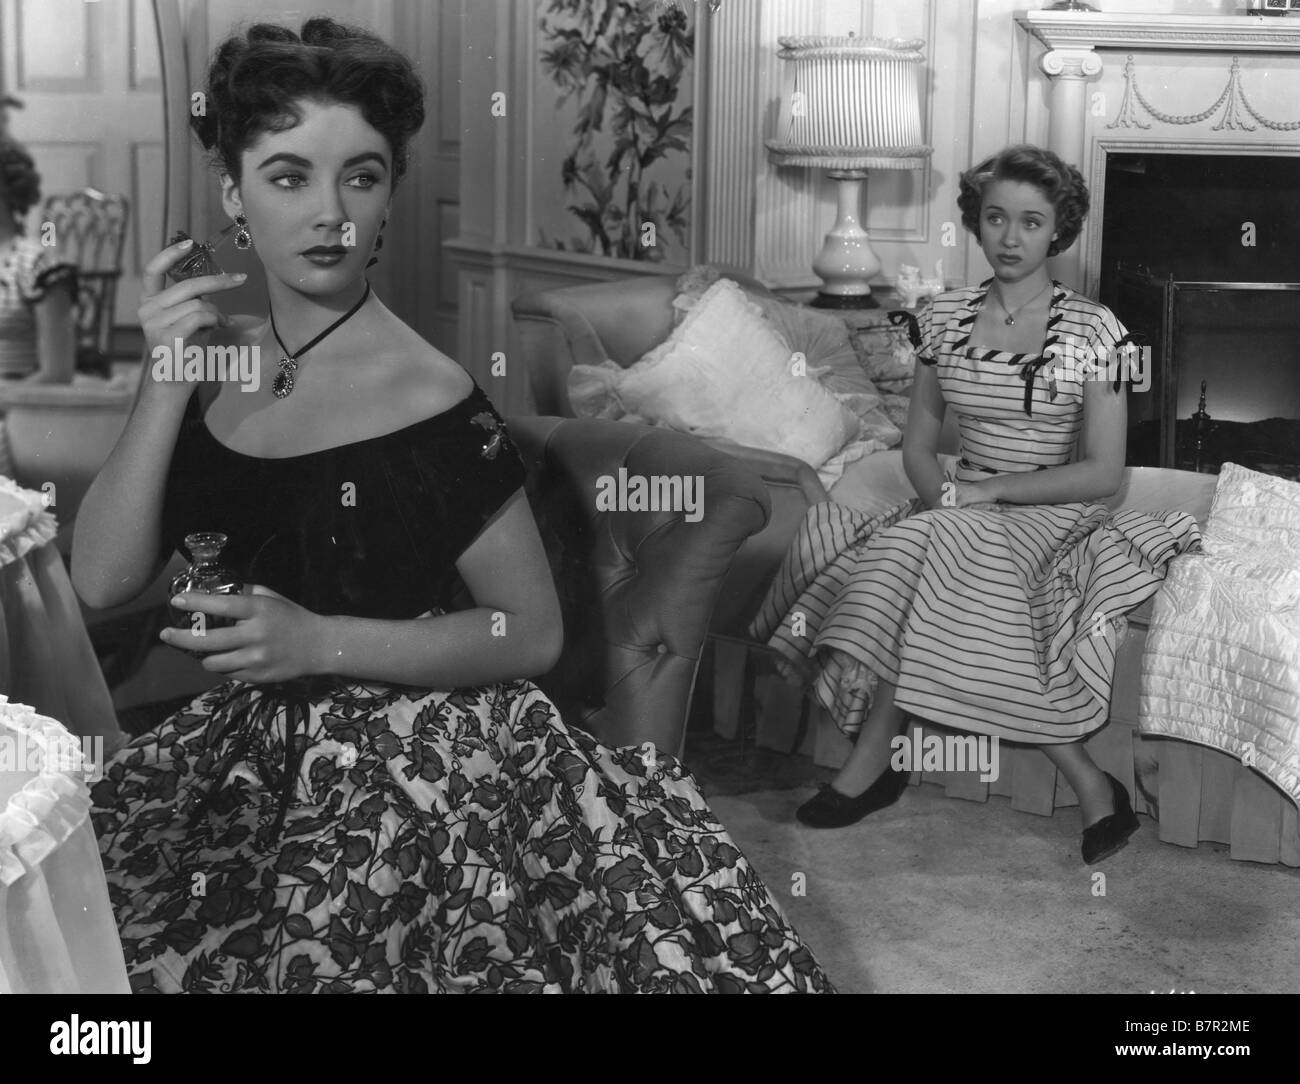 A Date with Judy  Year: 1948 USA Elizabeth Taylor (Liz Taylor), Jane Powell  Director: Richard Thorpe - Stock Image